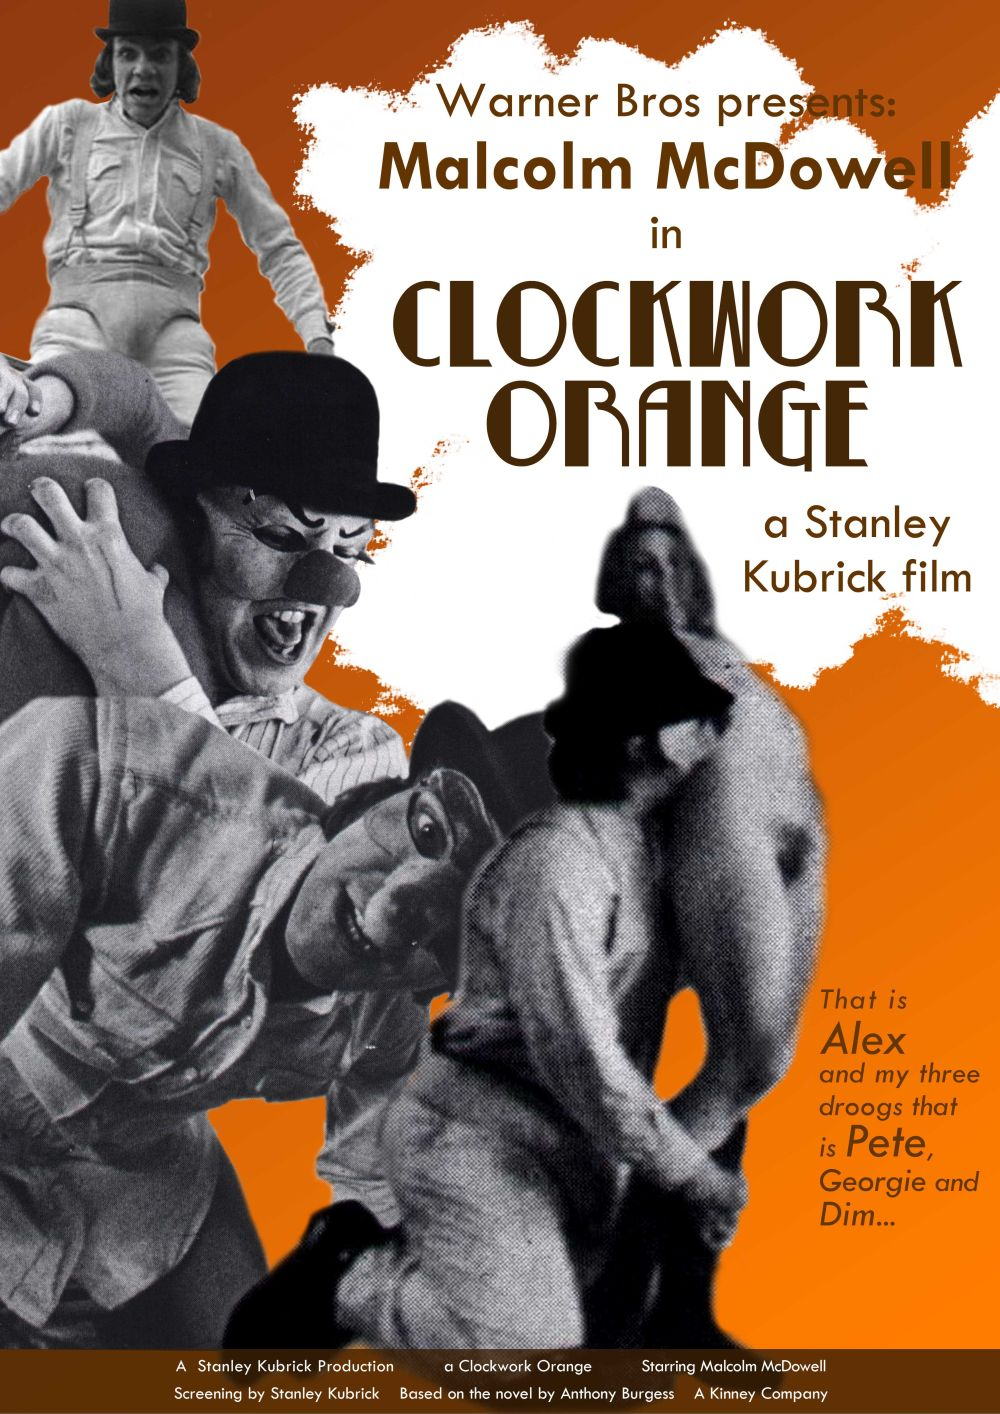 violence in a clockwork orange analysis Yet when he is the victim, particularly of the obsessed author of a clockwork orange, one cannot help but feel something the patron of the library is also a good example when he is the victim early on in the book, he is harmless and weak, and the attack on him is brutal.